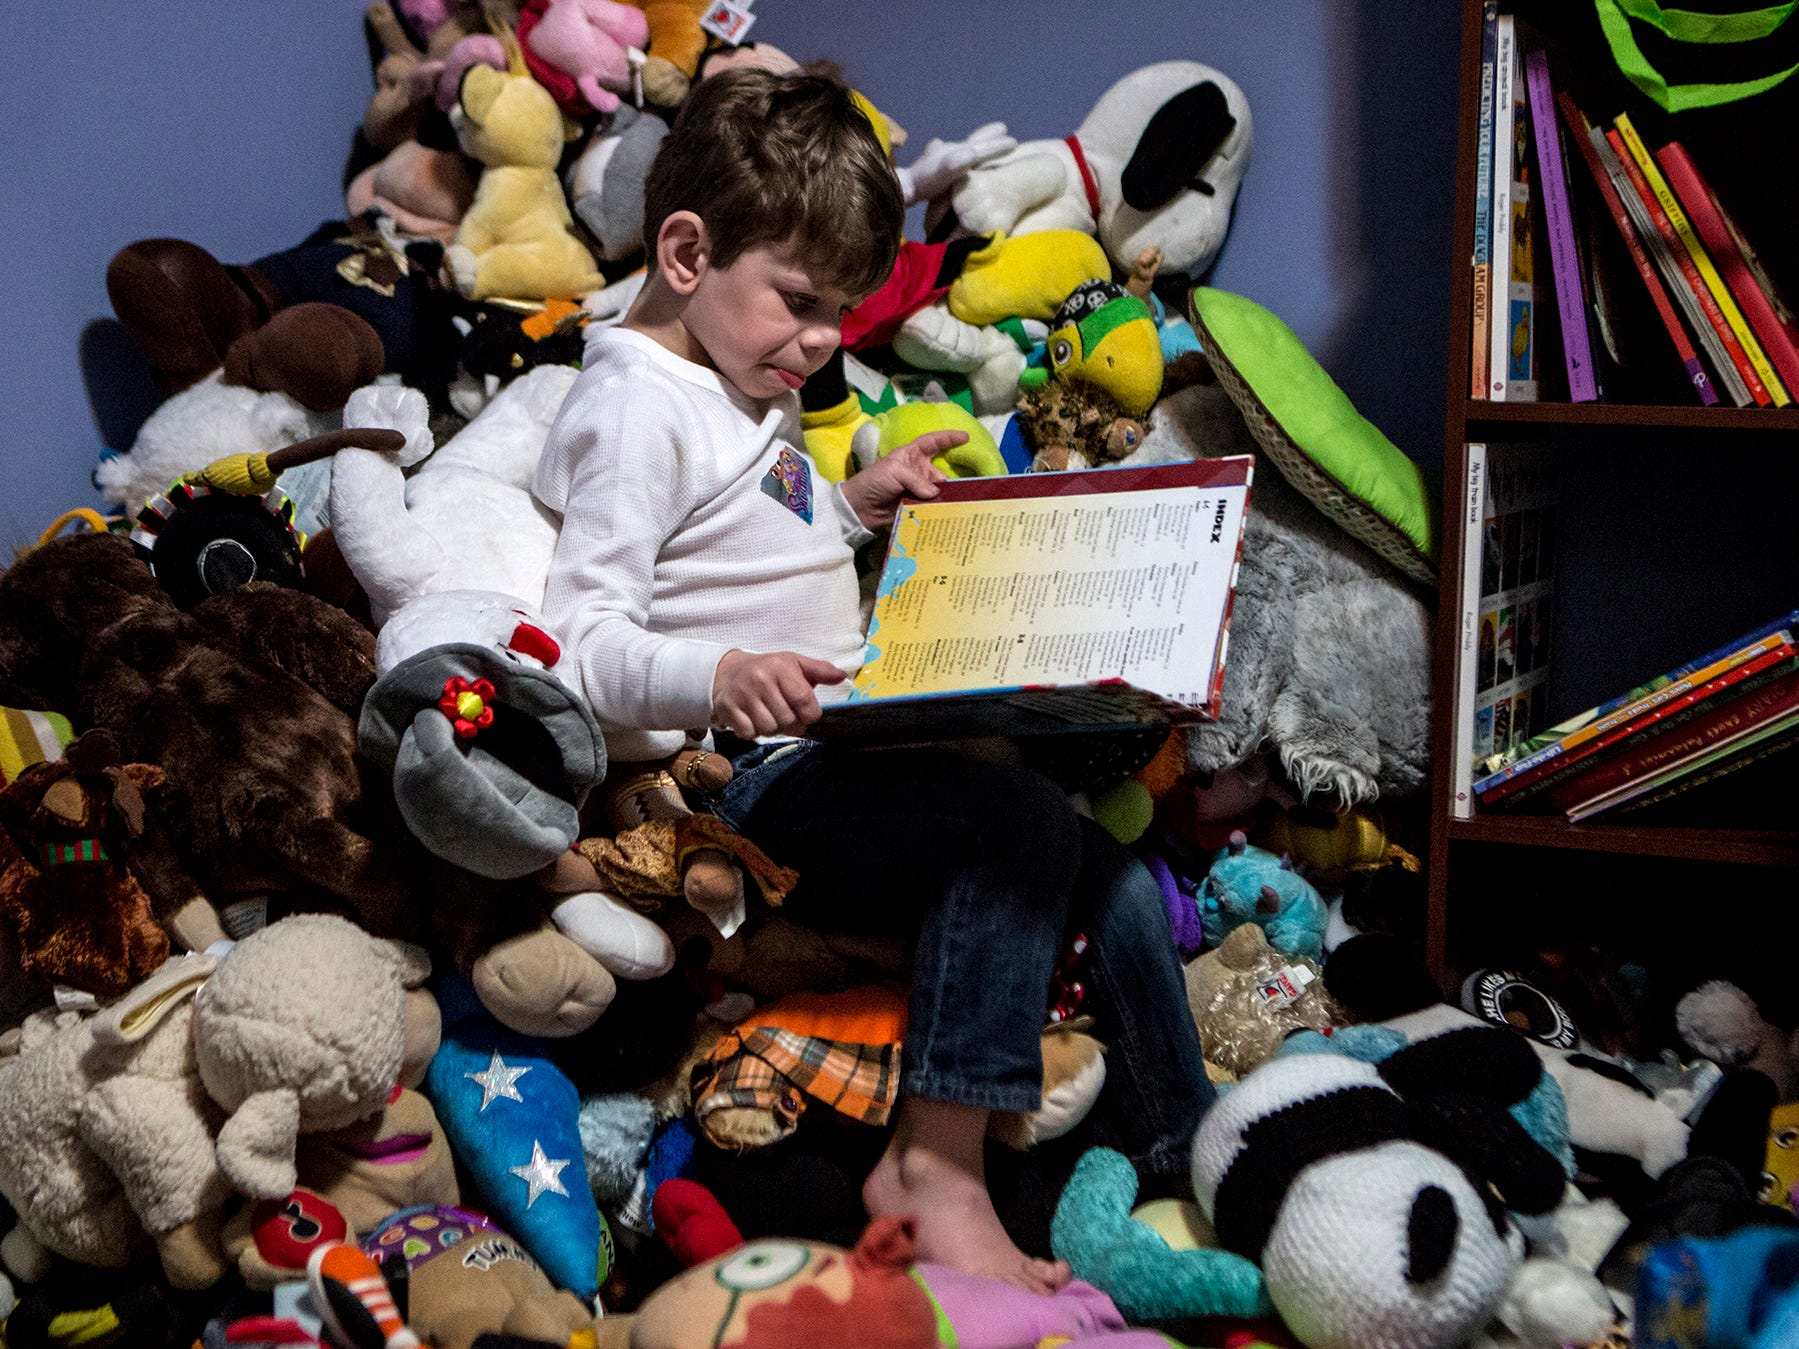 After being thrown onto a pile of stuffed animals Leo grabbed a book and started flipping through the pages. Leo, who is 6, has been diagnosed with Williams Syndrome and Autism meaning he sometimes fixates on a certain thing, like a book for an extended period of time.